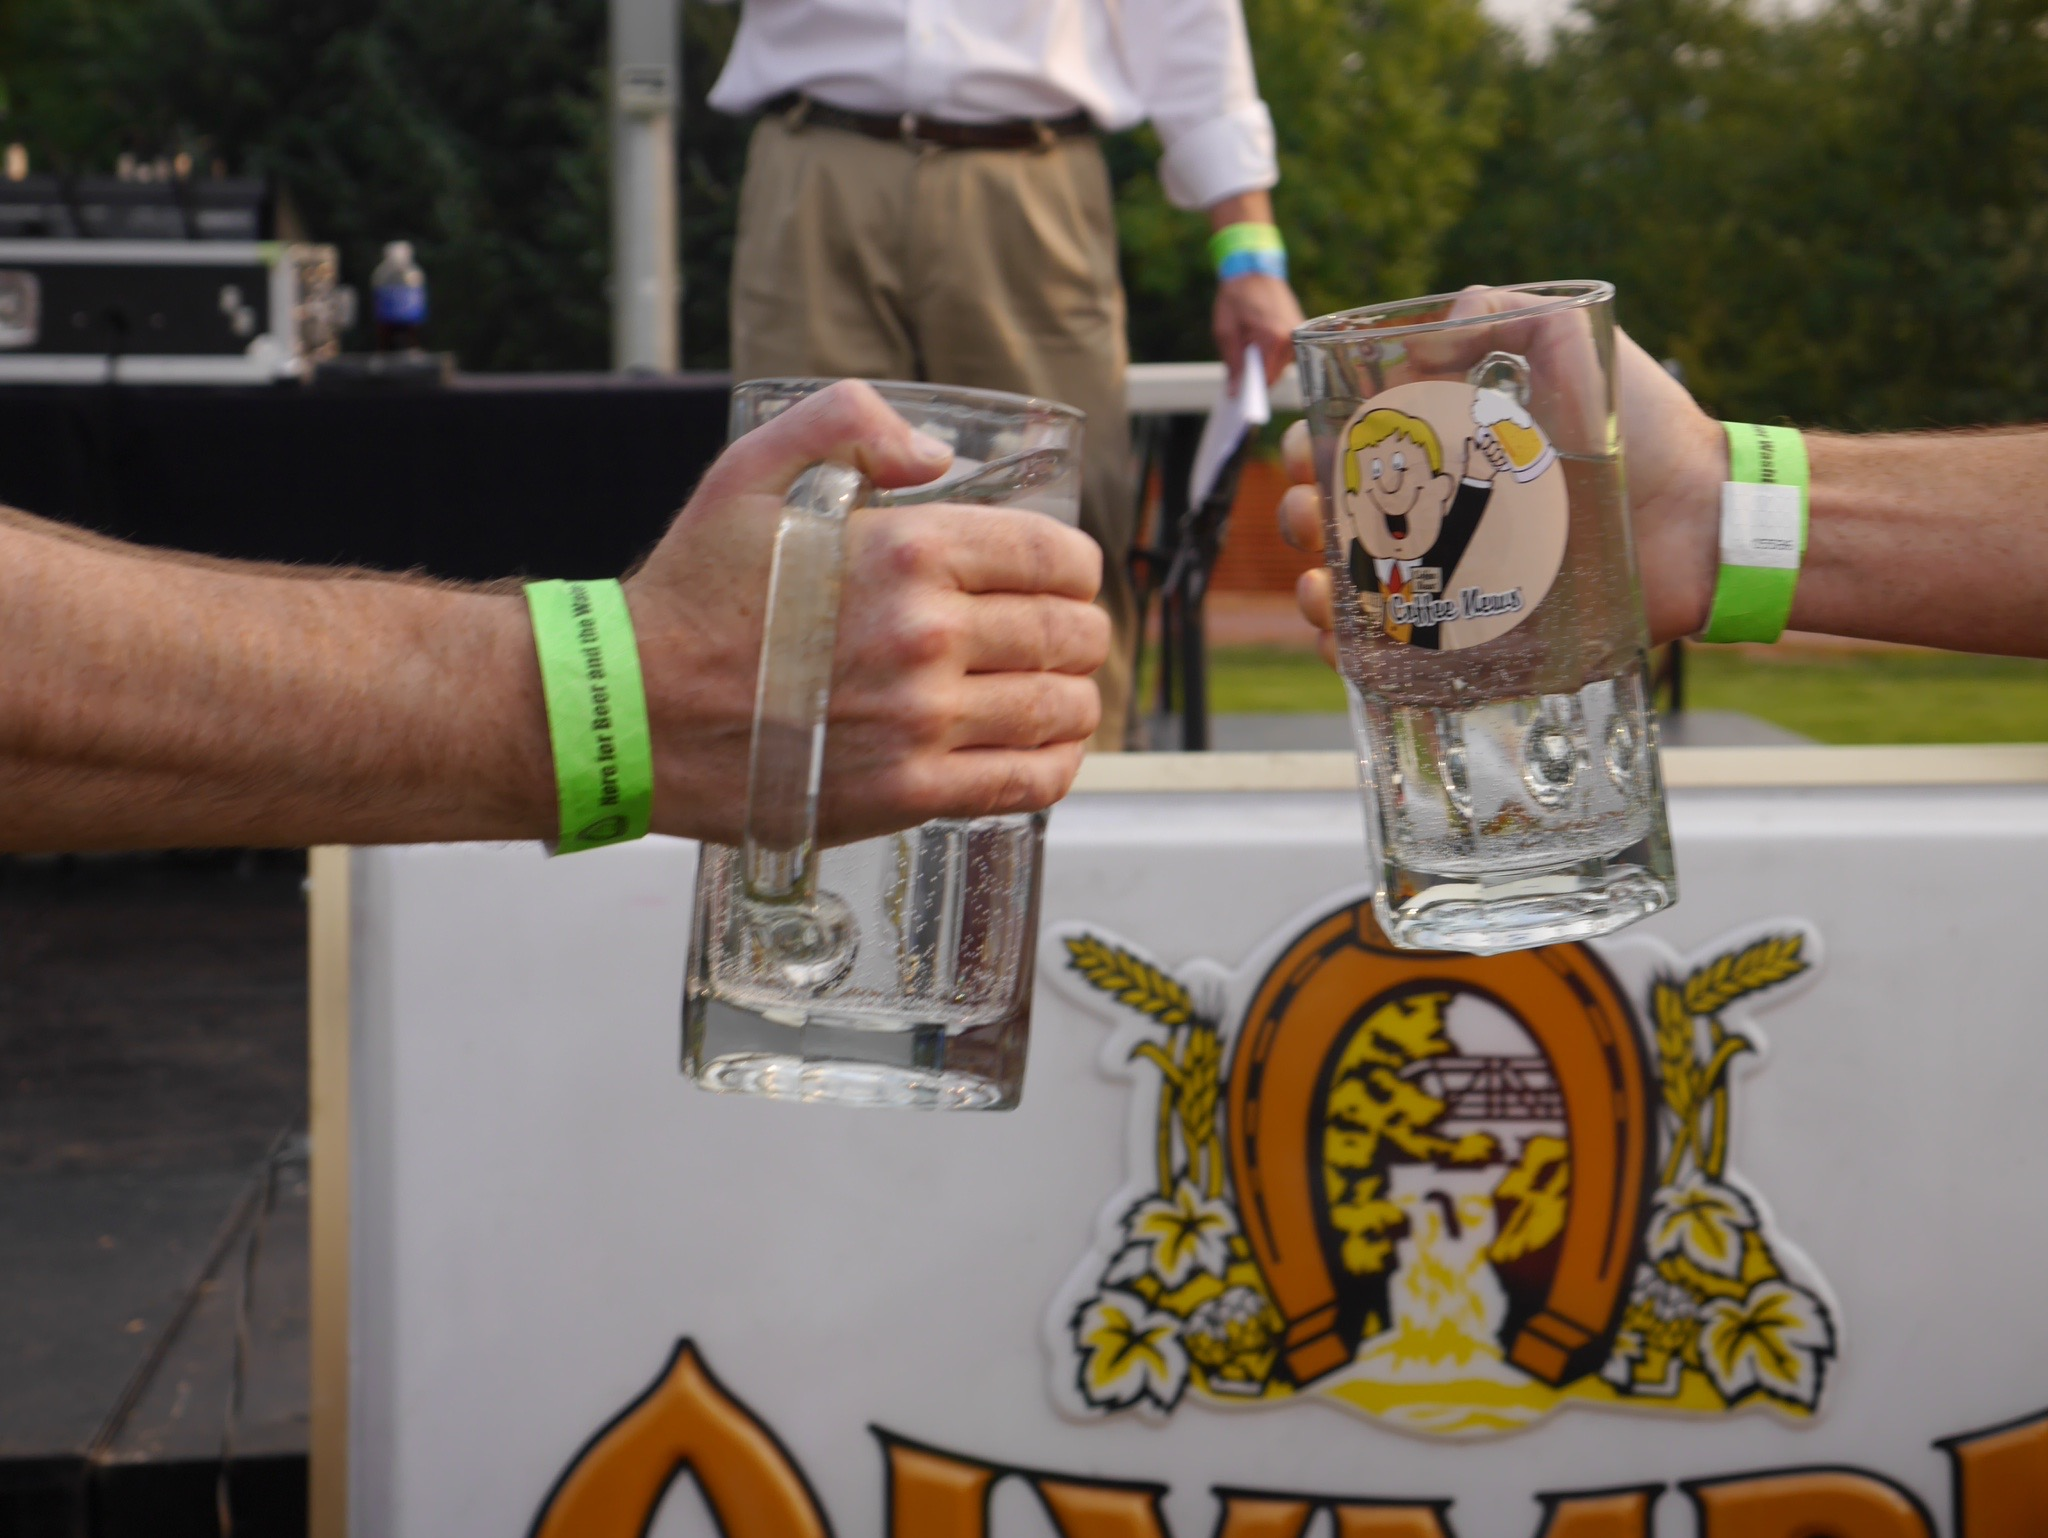 The mugs are getting heavy during the Stein Holiding Contest at the Tumwater Artesian Brewfest. (photo by Cat Stelzer)